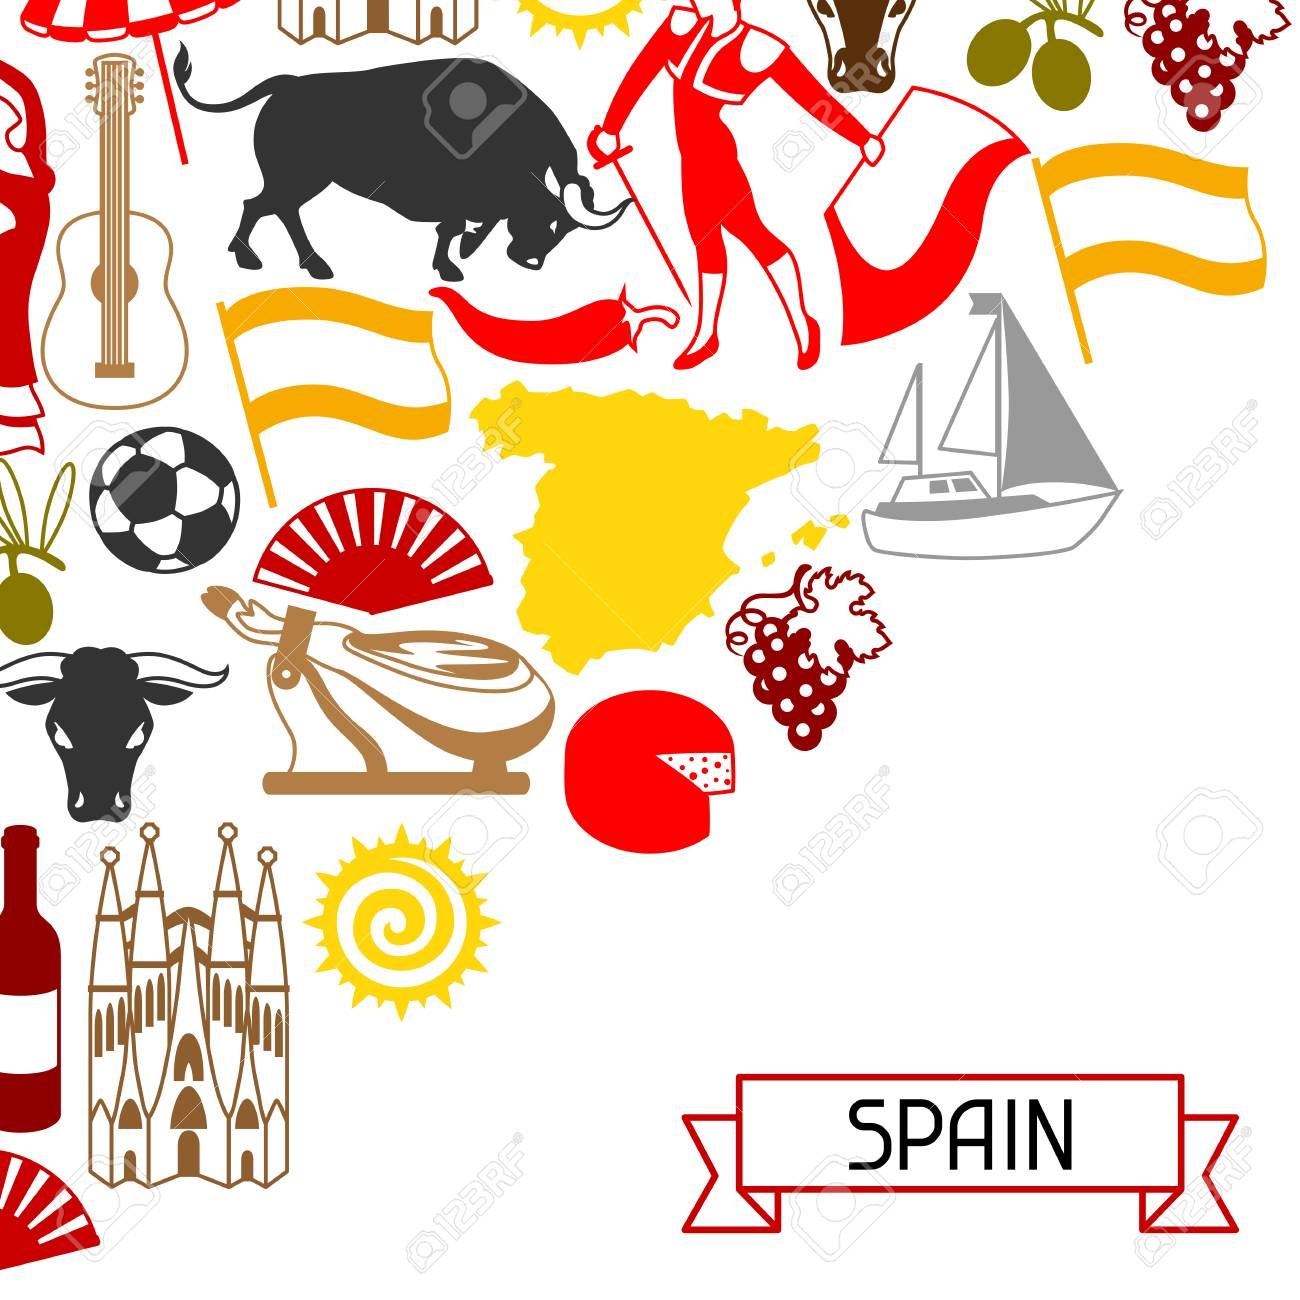 Spain background design spanish traditional symbols and objects spain background design spanish traditional symbols and objects stock vector 87904534 voltagebd Gallery